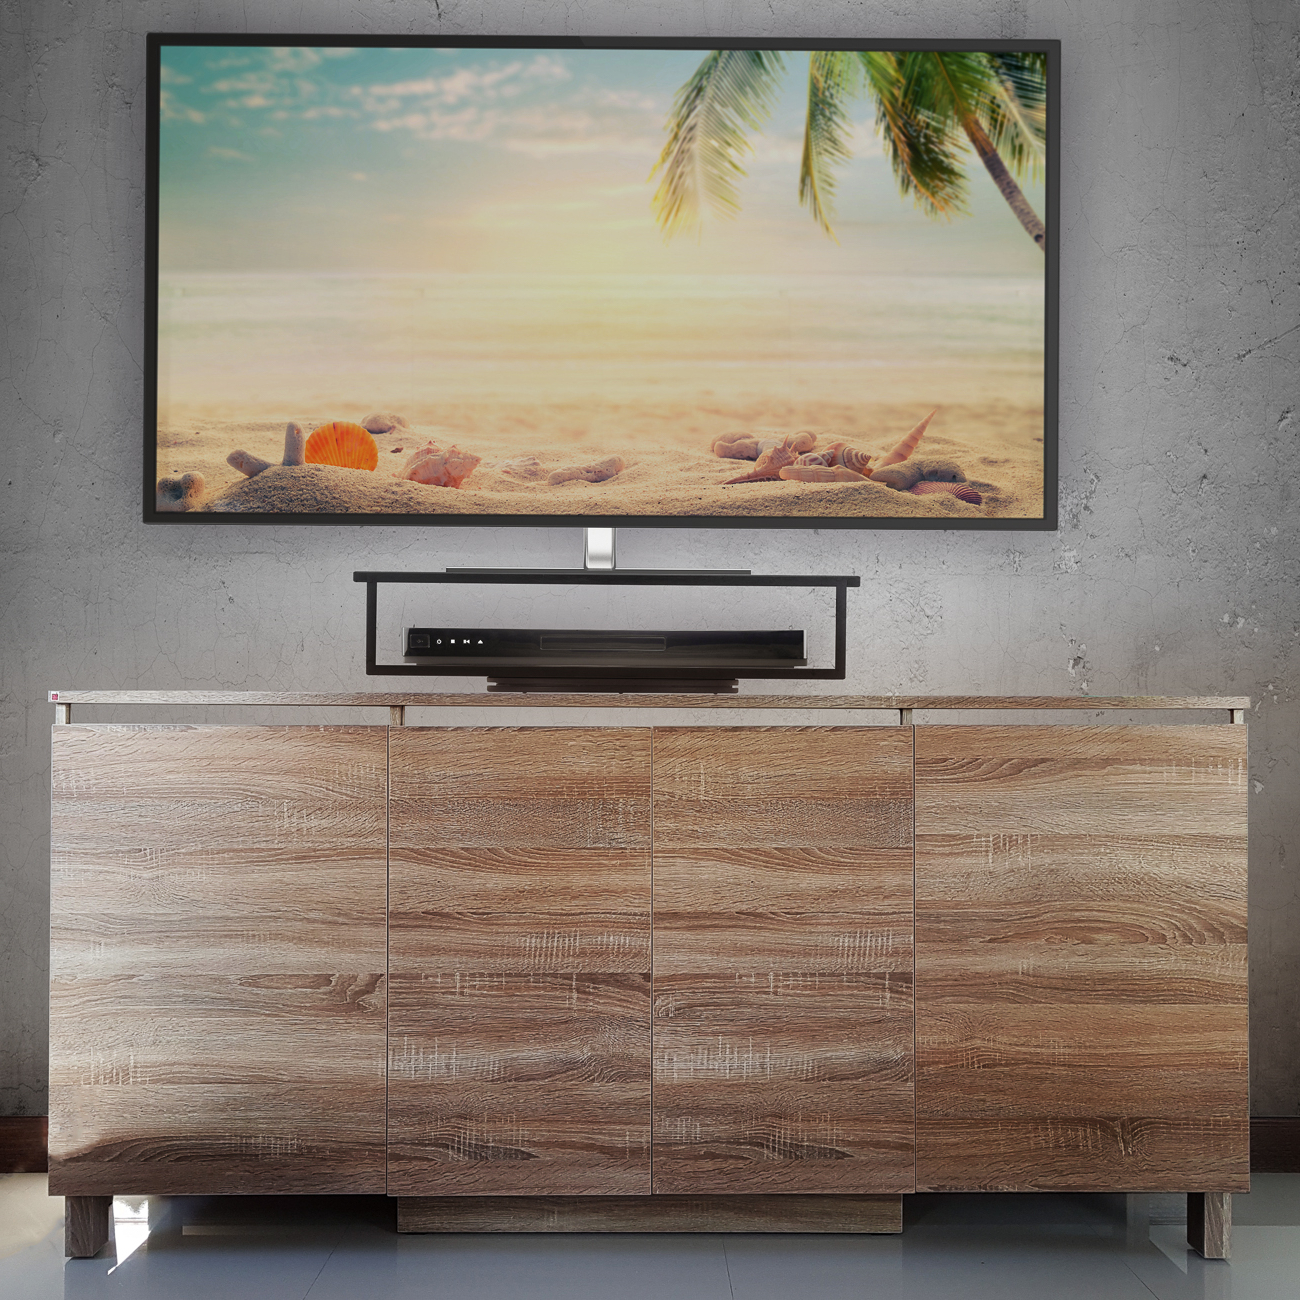 Black Bamboo 2 Tier Tv Swivel Stand – Prosumer's Choice Pertaining To Tier Entertainment Tv Stands In Black (View 17 of 20)